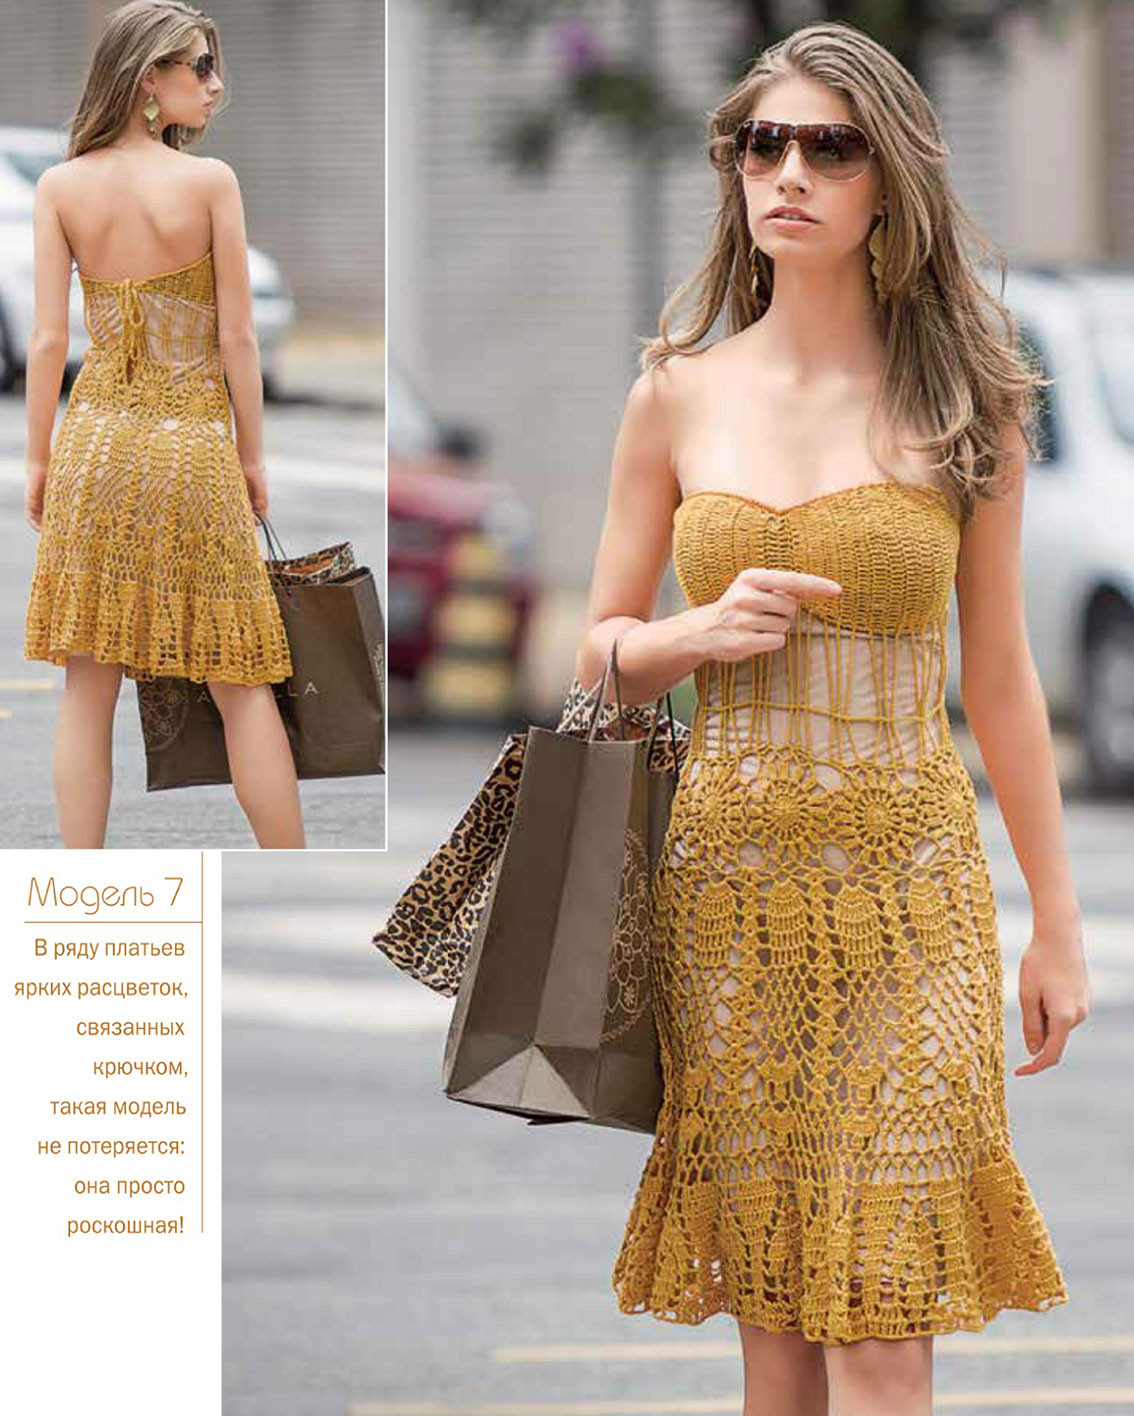 Crochet Outfit Awesome Y Crochet Summer Dress ⋆ Crochet Kingdom Of Gorgeous 41 Ideas Crochet Outfit